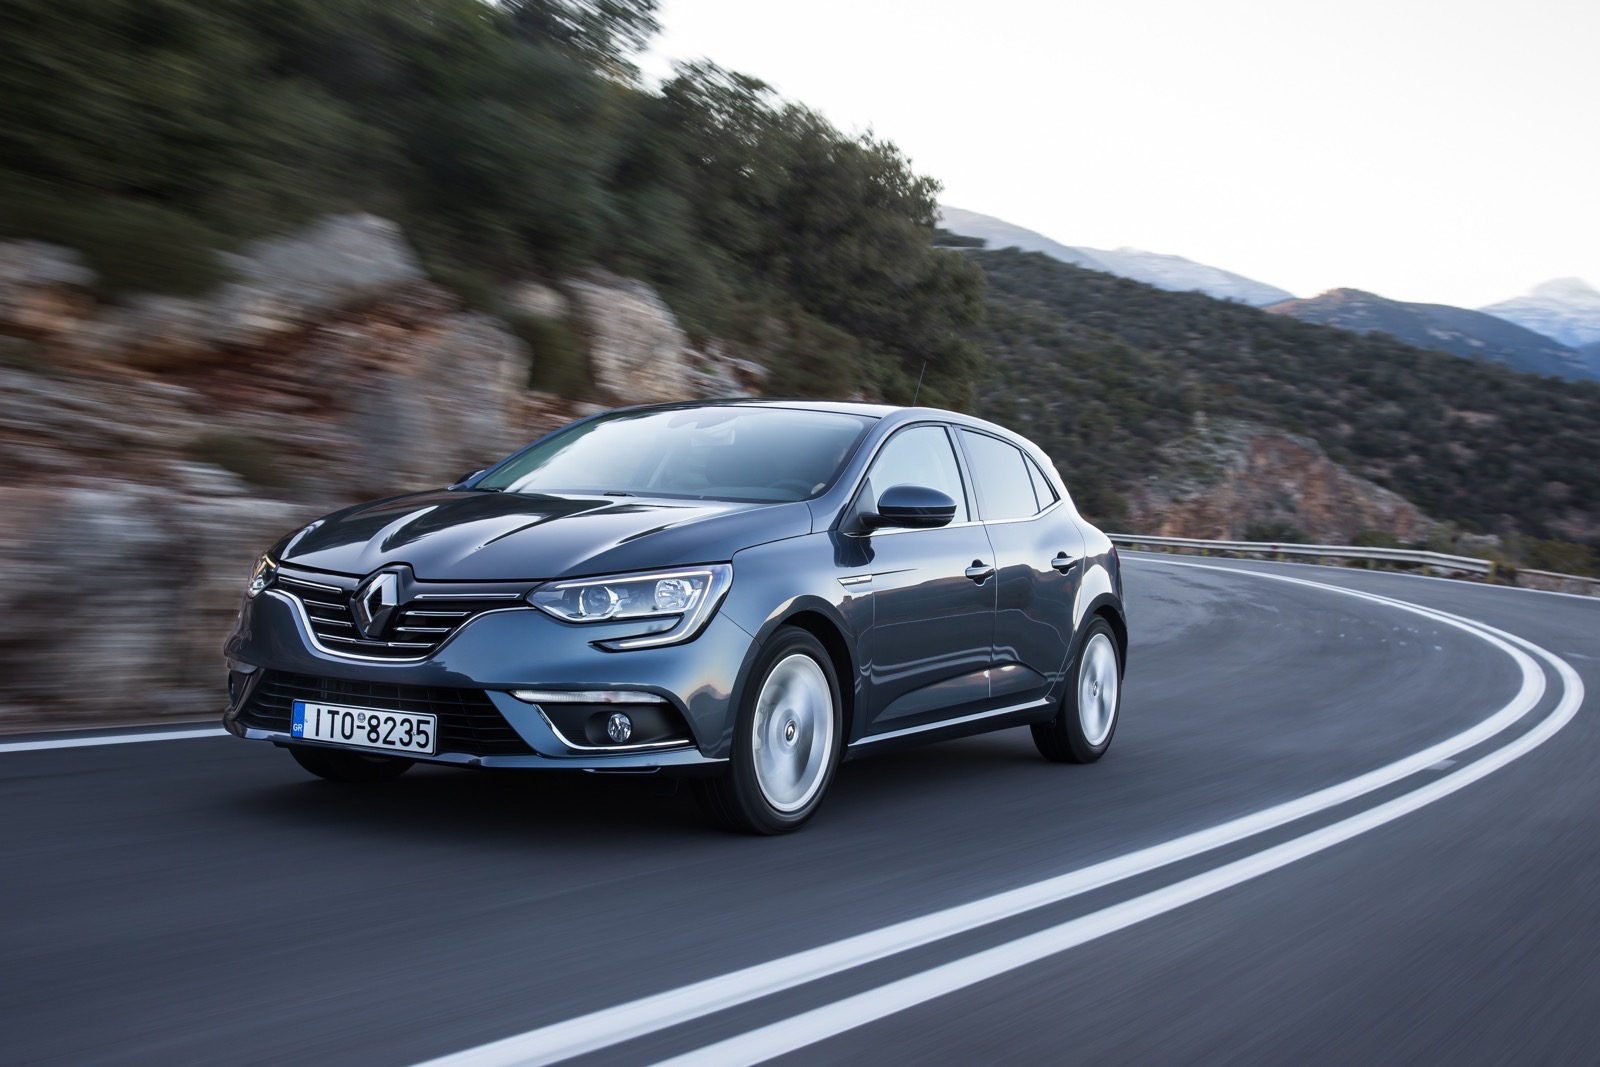 First_Drive_Renault_Megane_54